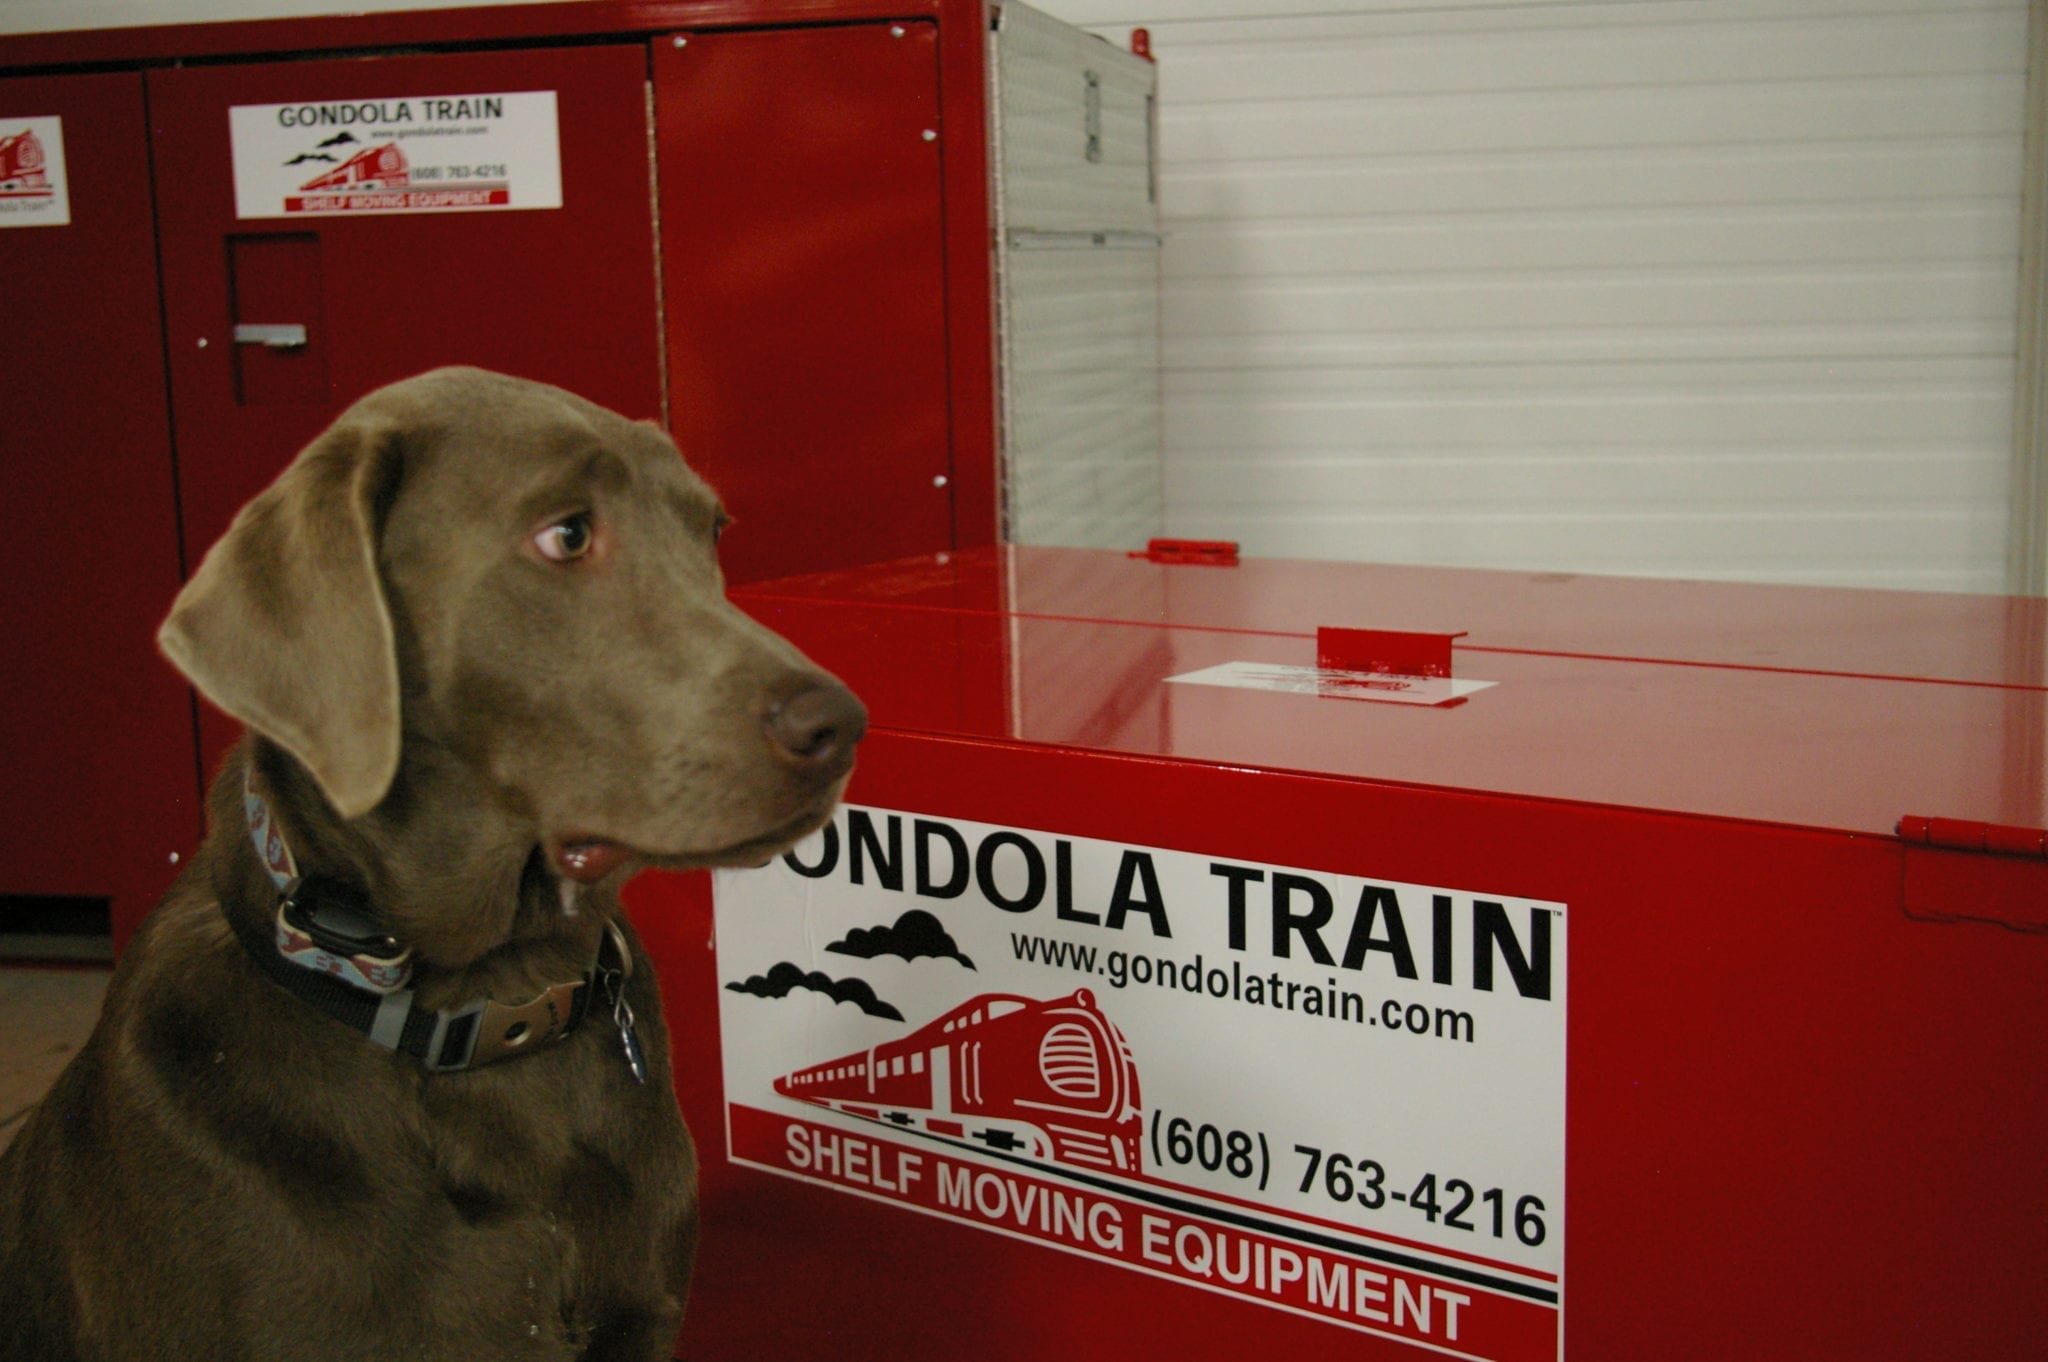 A chocolate lab sitting in front of a red Gondola Train storage box.